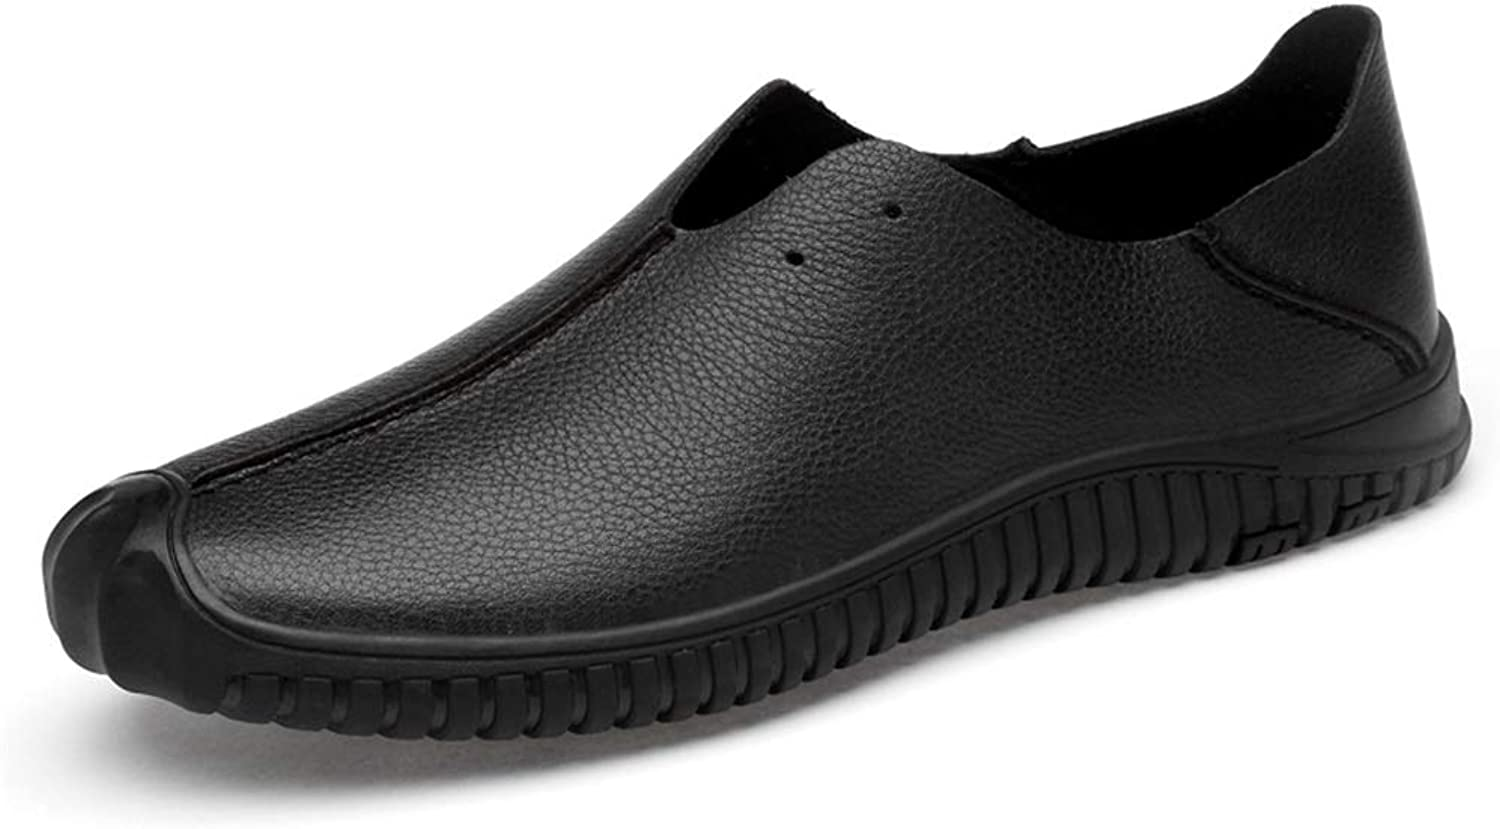 Men's Fashion Driving Loafers Simple Flexible Light Boat Moccasins(Hollow Optional) (color   Black, Size   5 UK)